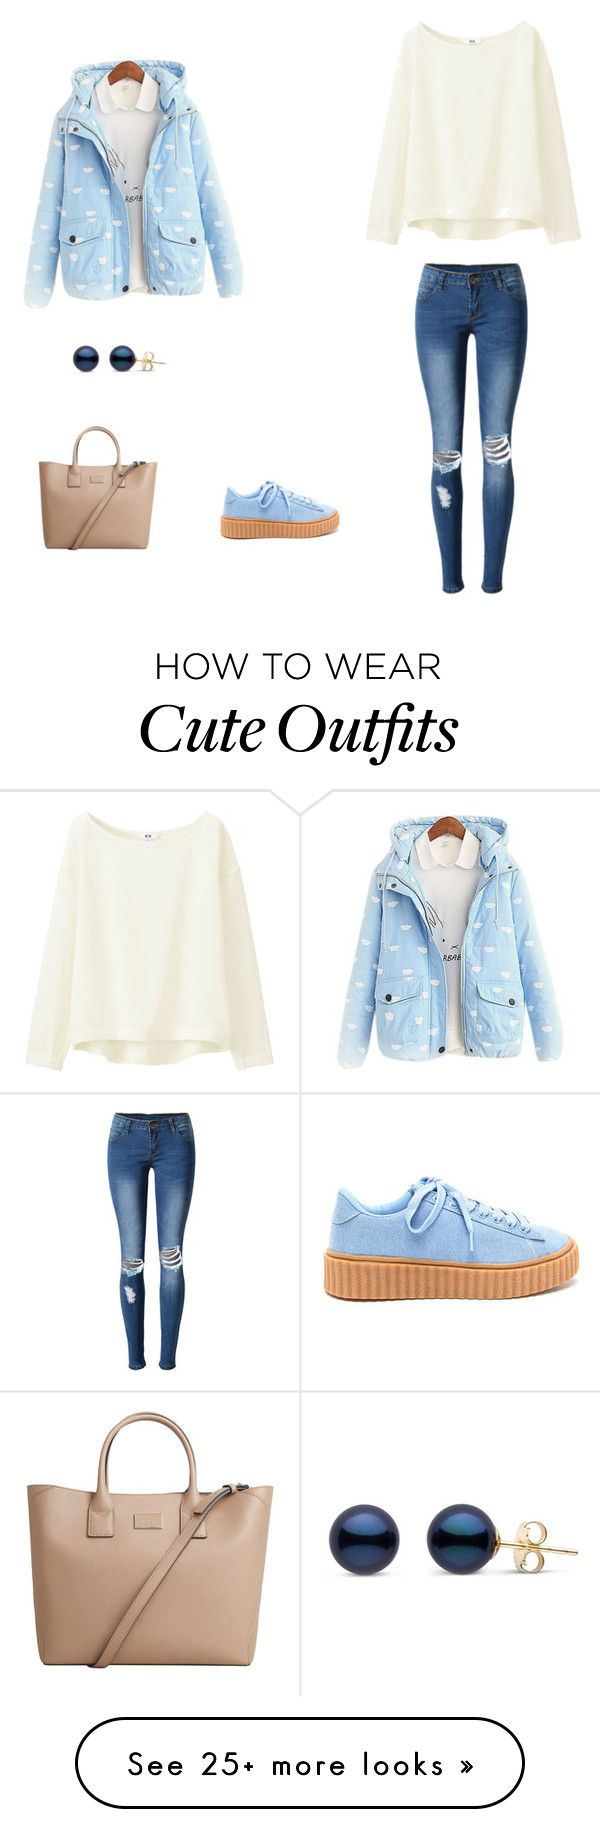 """Puffer jacket outfit"" by gabyprod on Polyvore featuring WithChic, Uniqlo and MANGO"